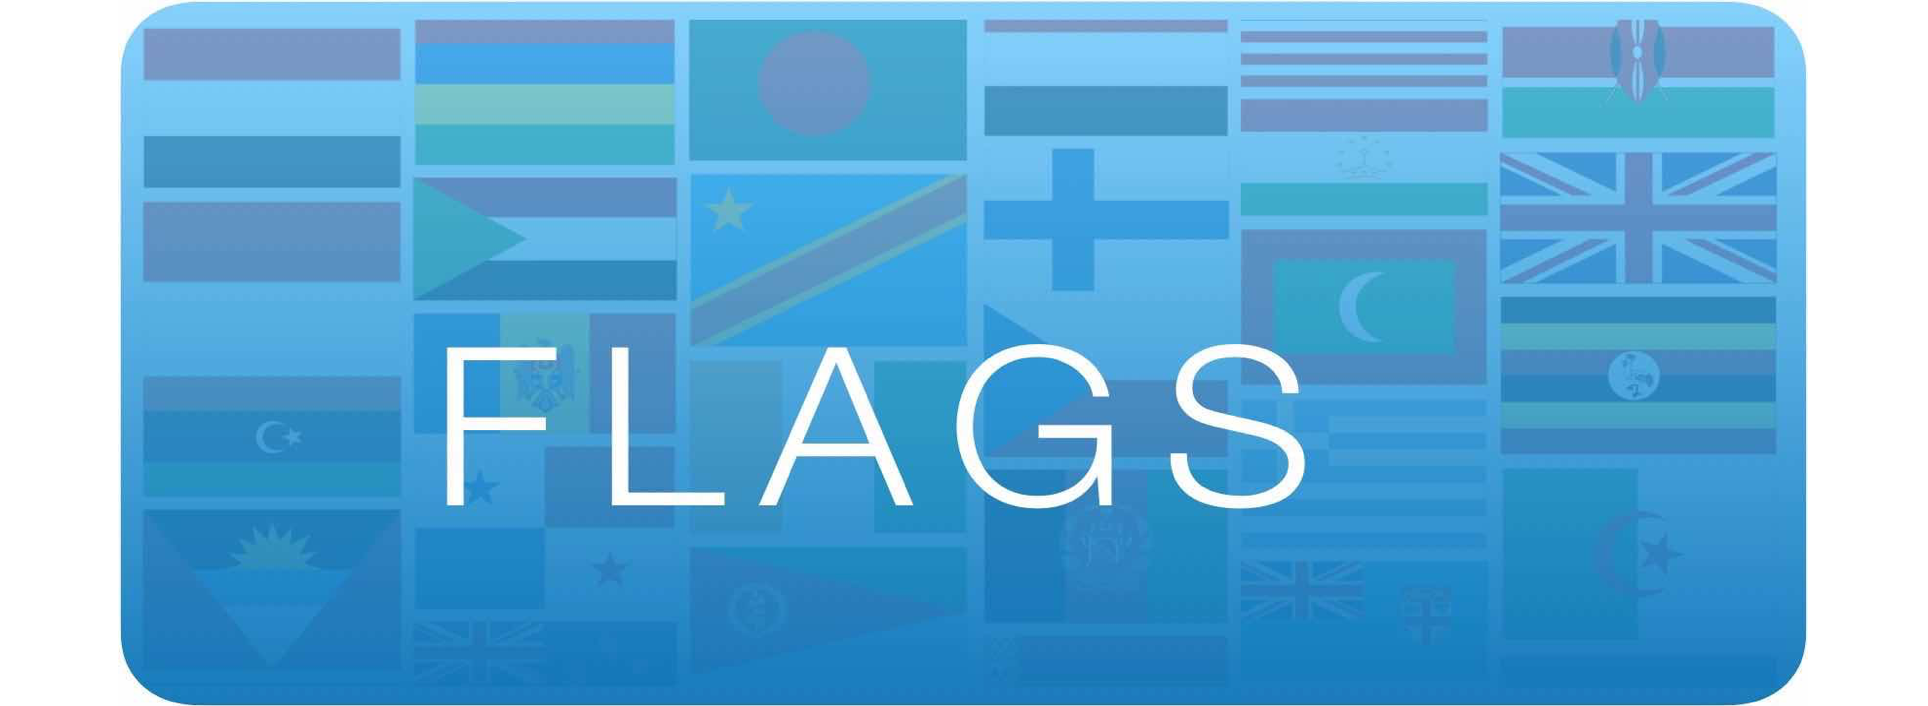 Home Button - Flags